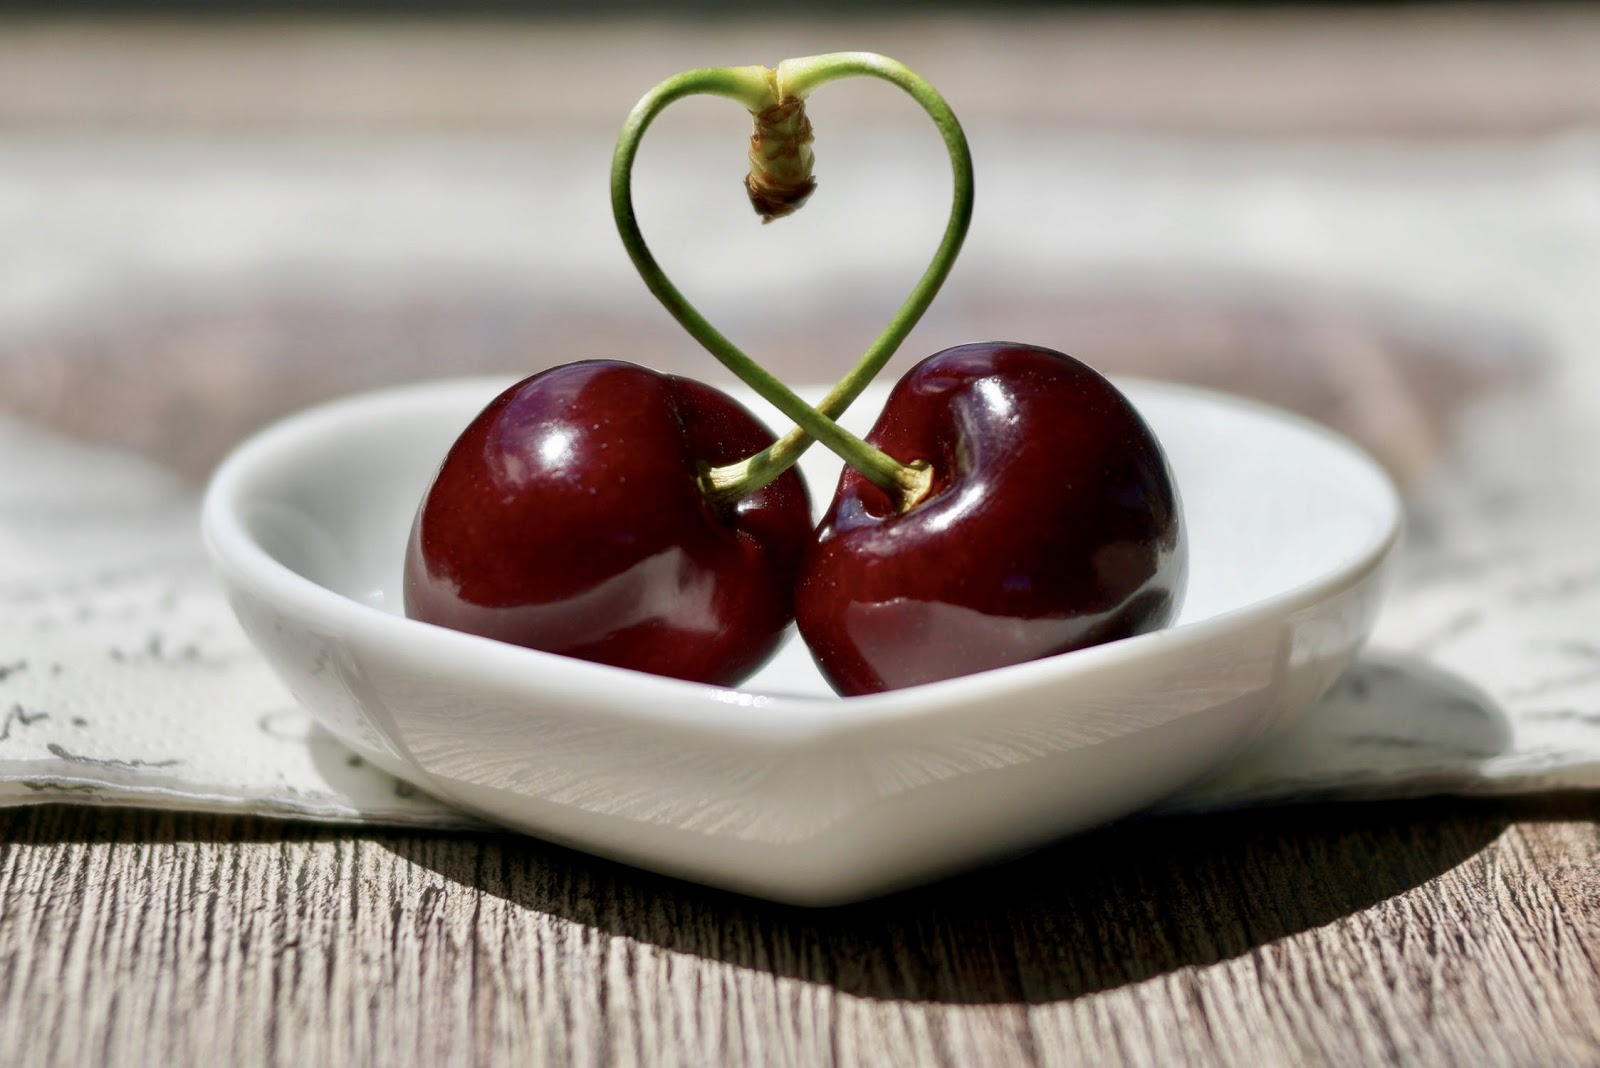 Heart-healthy meals: two cherries with their stems forming the shape of a heart